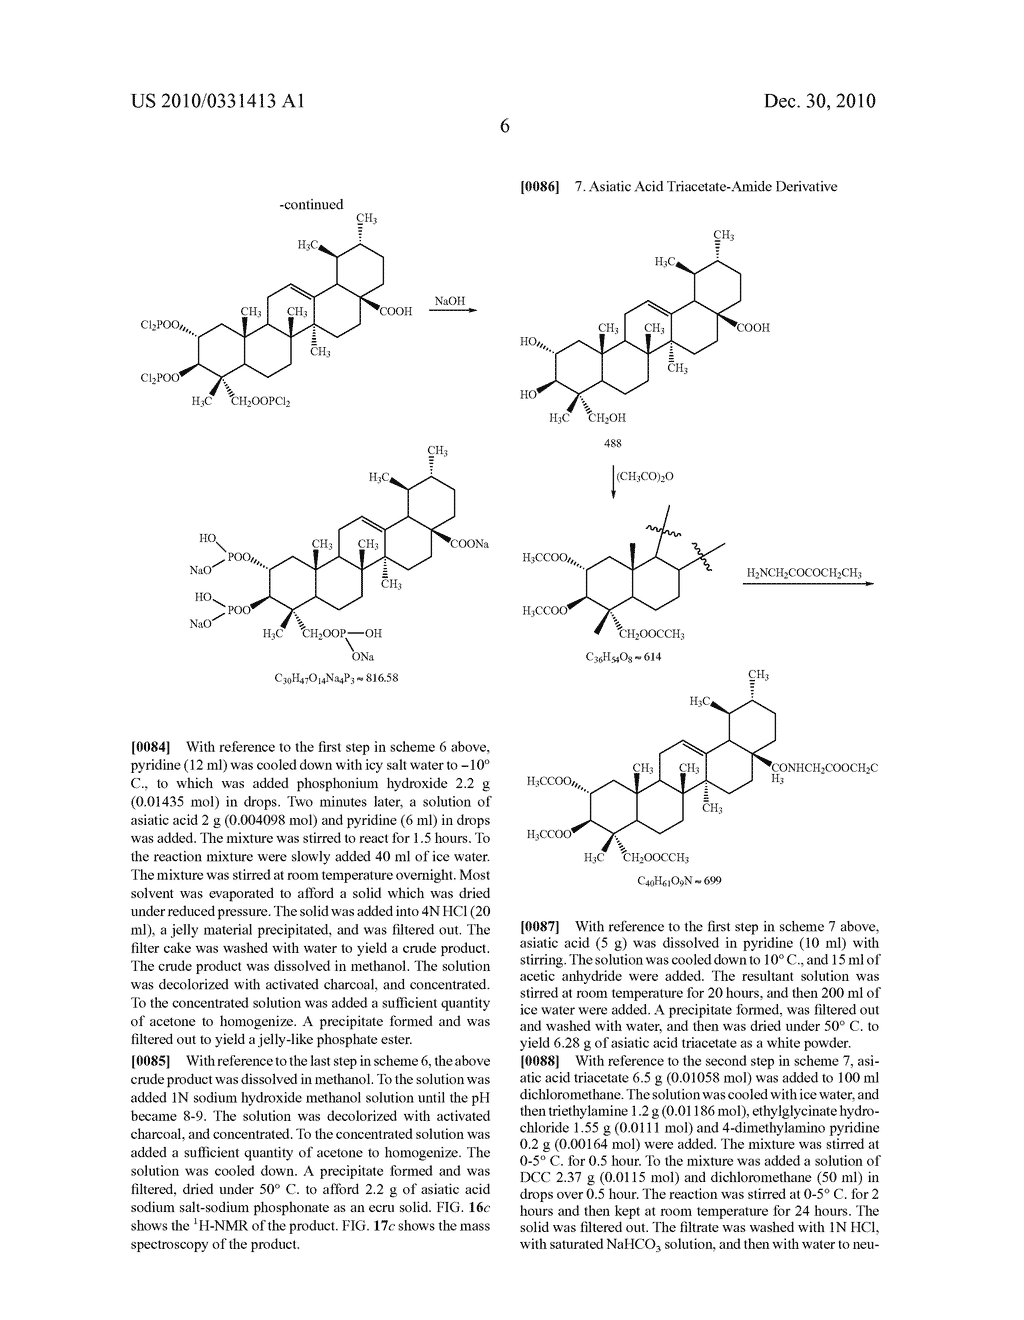 Therapeutic Formulations Based on Asiatic Acid and Selected Salts Thereof - diagram, schematic, and image 39